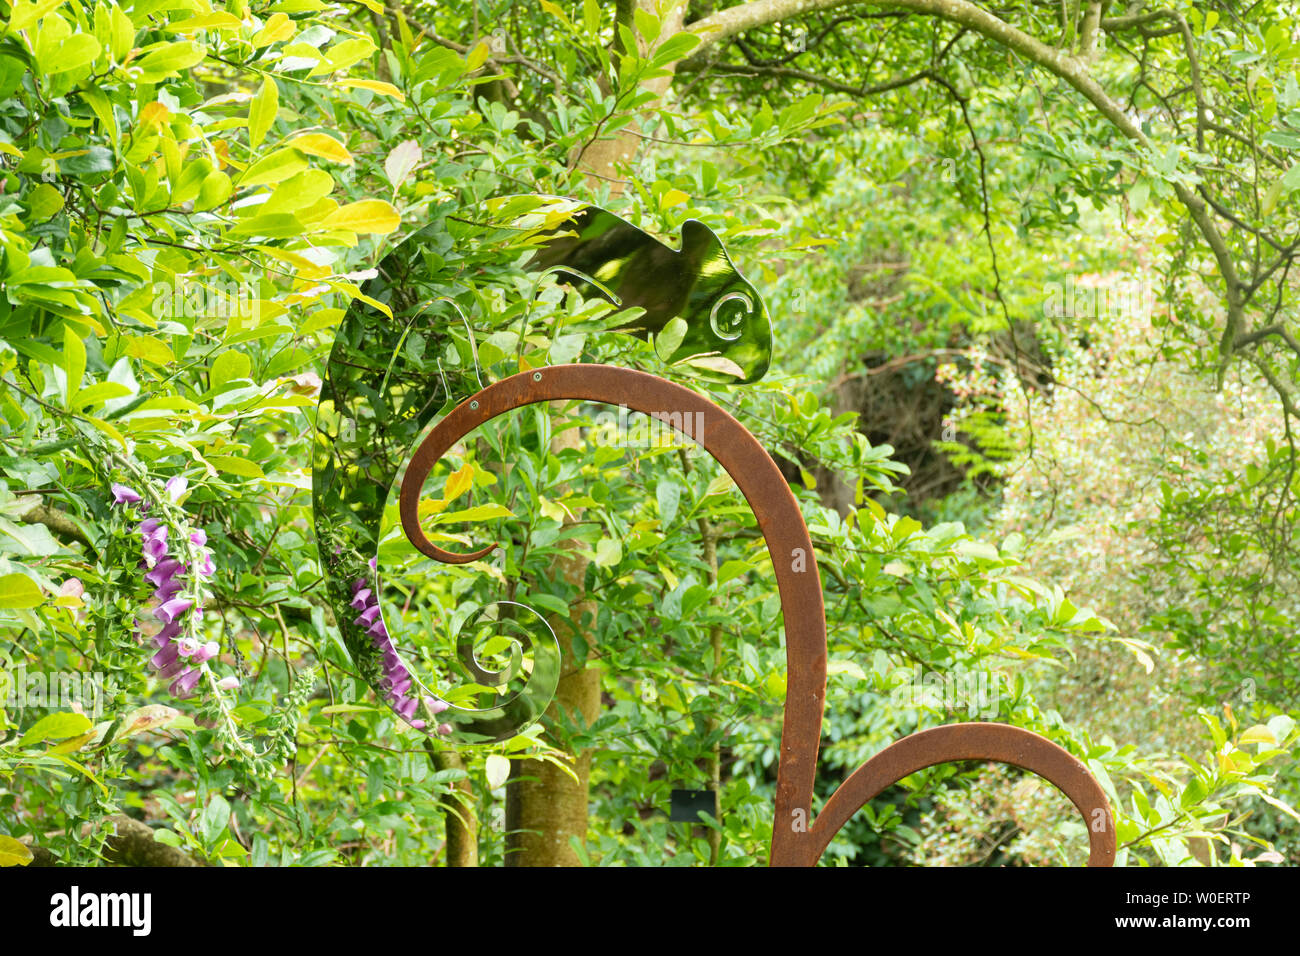 artwork-in-the-garden-reflective-metal-sculpture-at-sir-harold-hillier-gardens-hampshire-uk-during-june-or-summer-W0ERTP.jpg